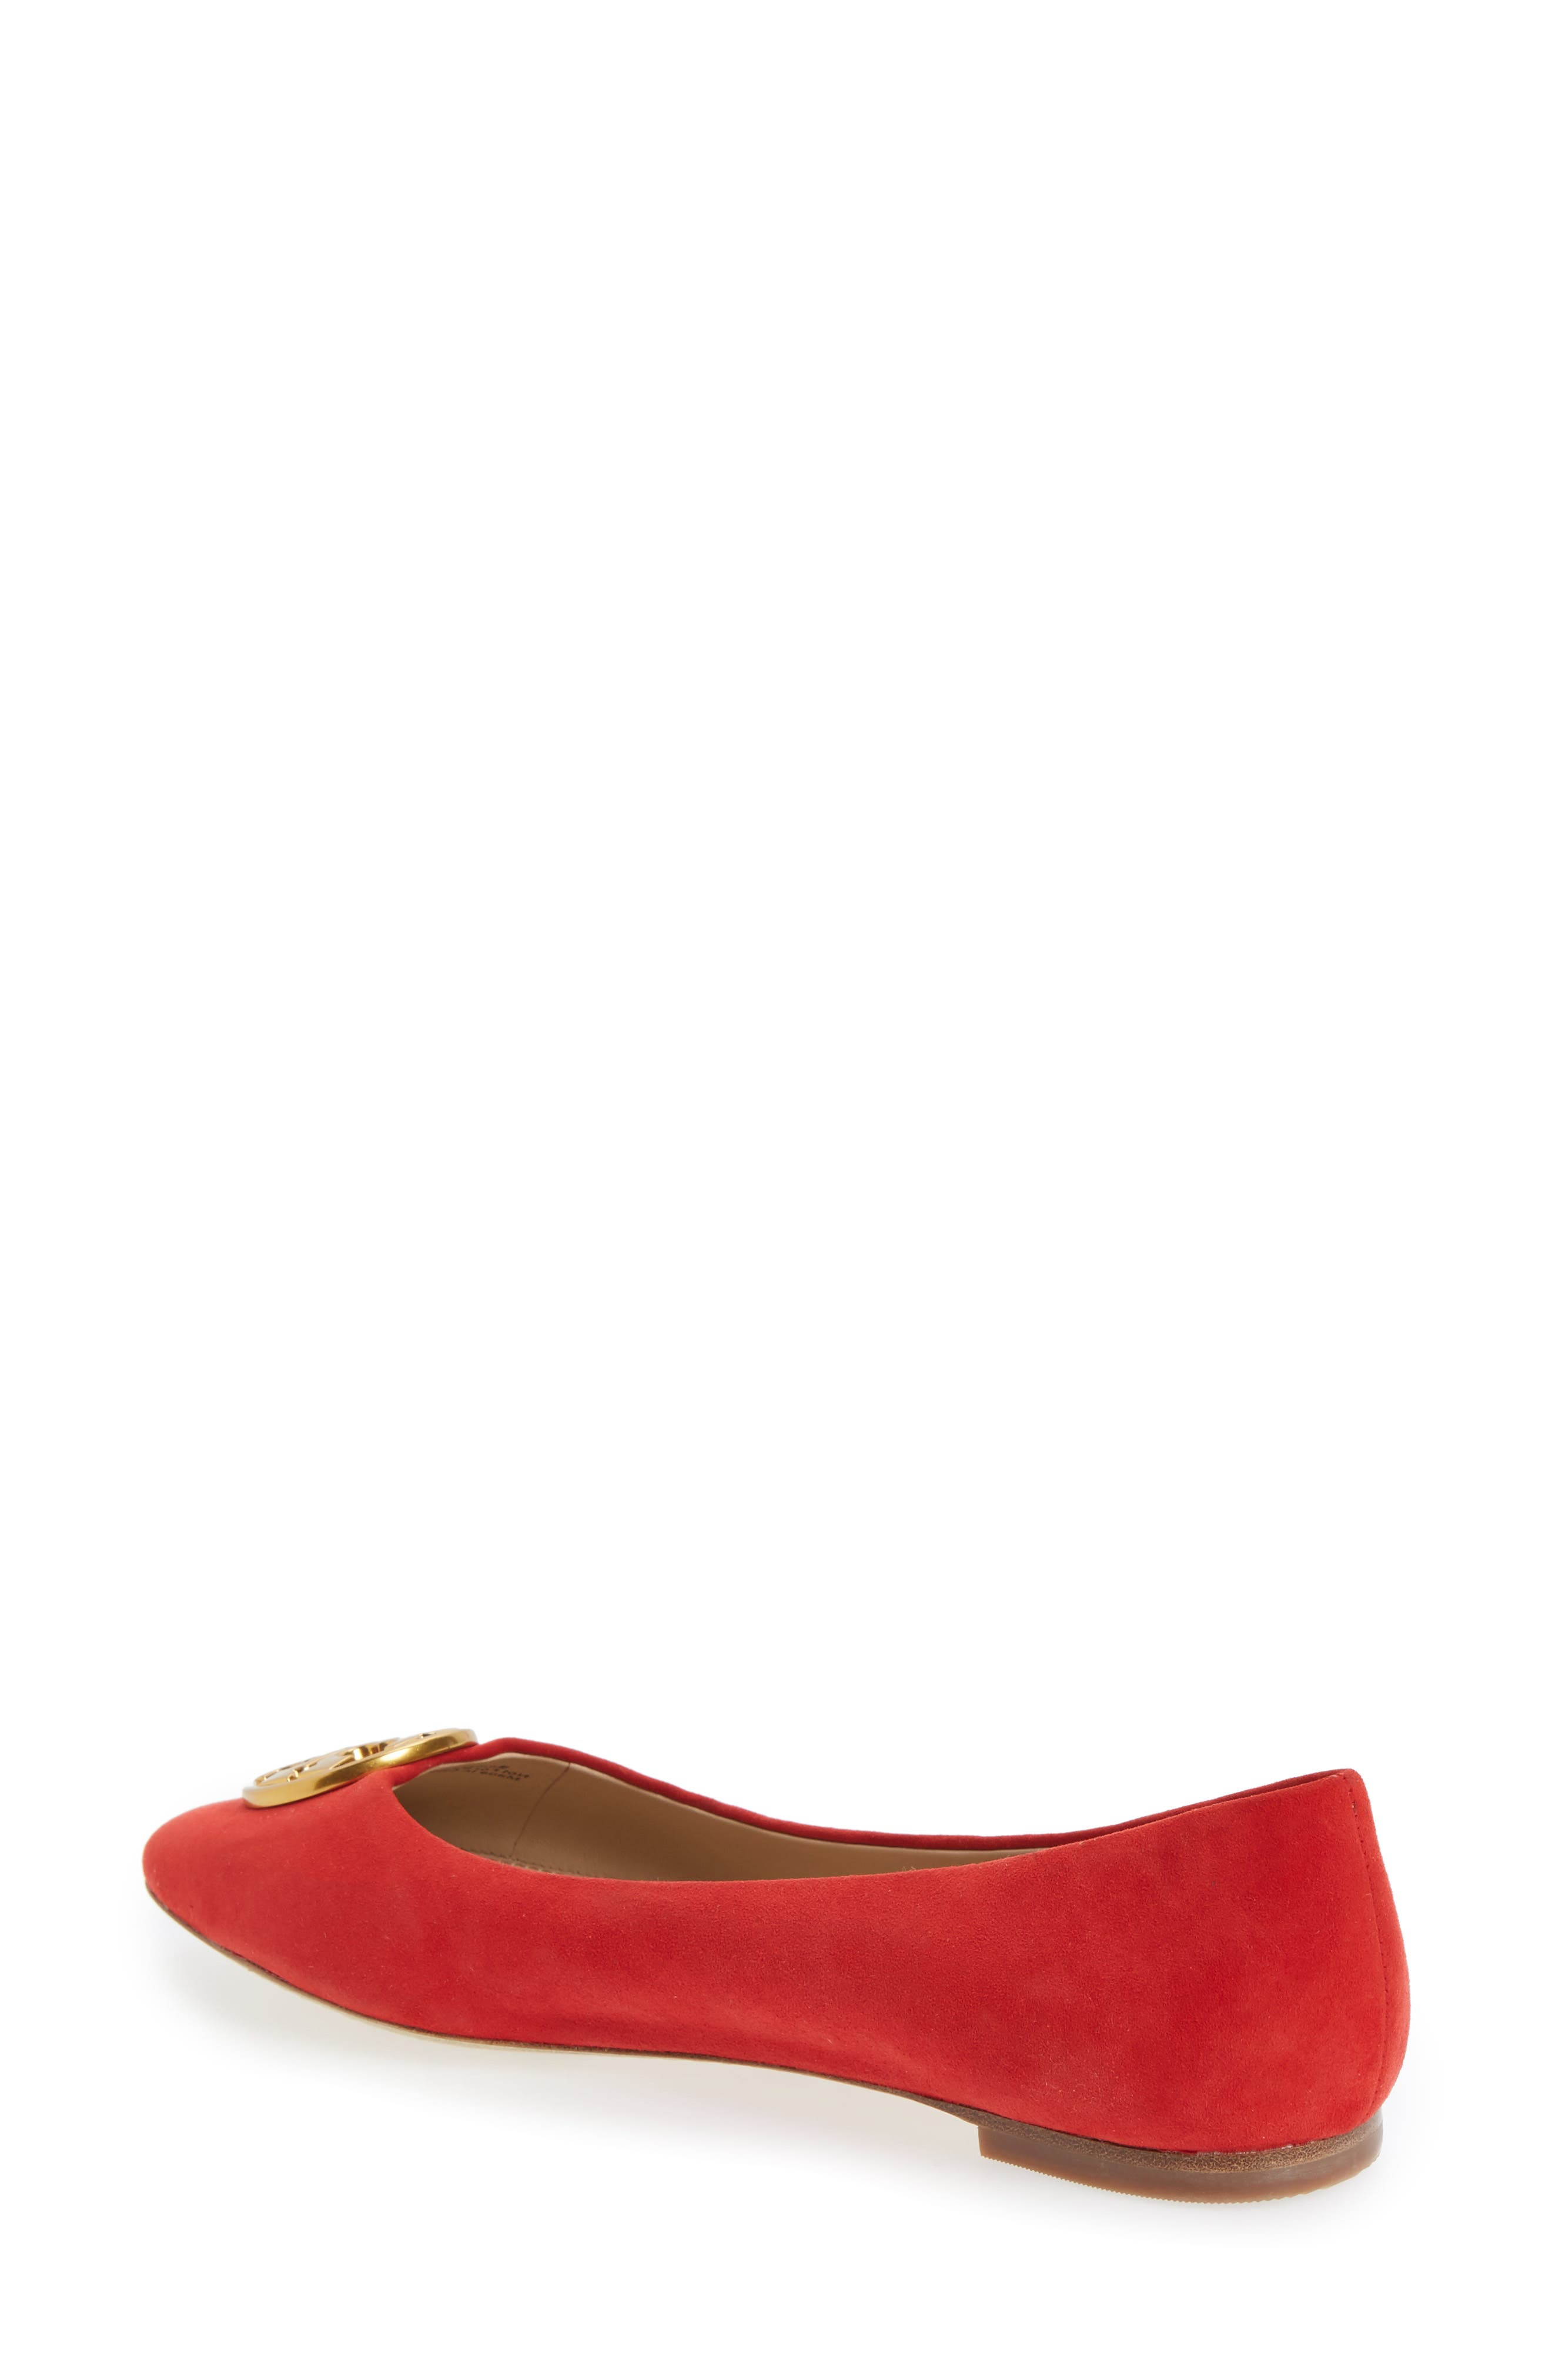 Chelsea Ballet Flat,                             Alternate thumbnail 2, color,                             Liberty Red